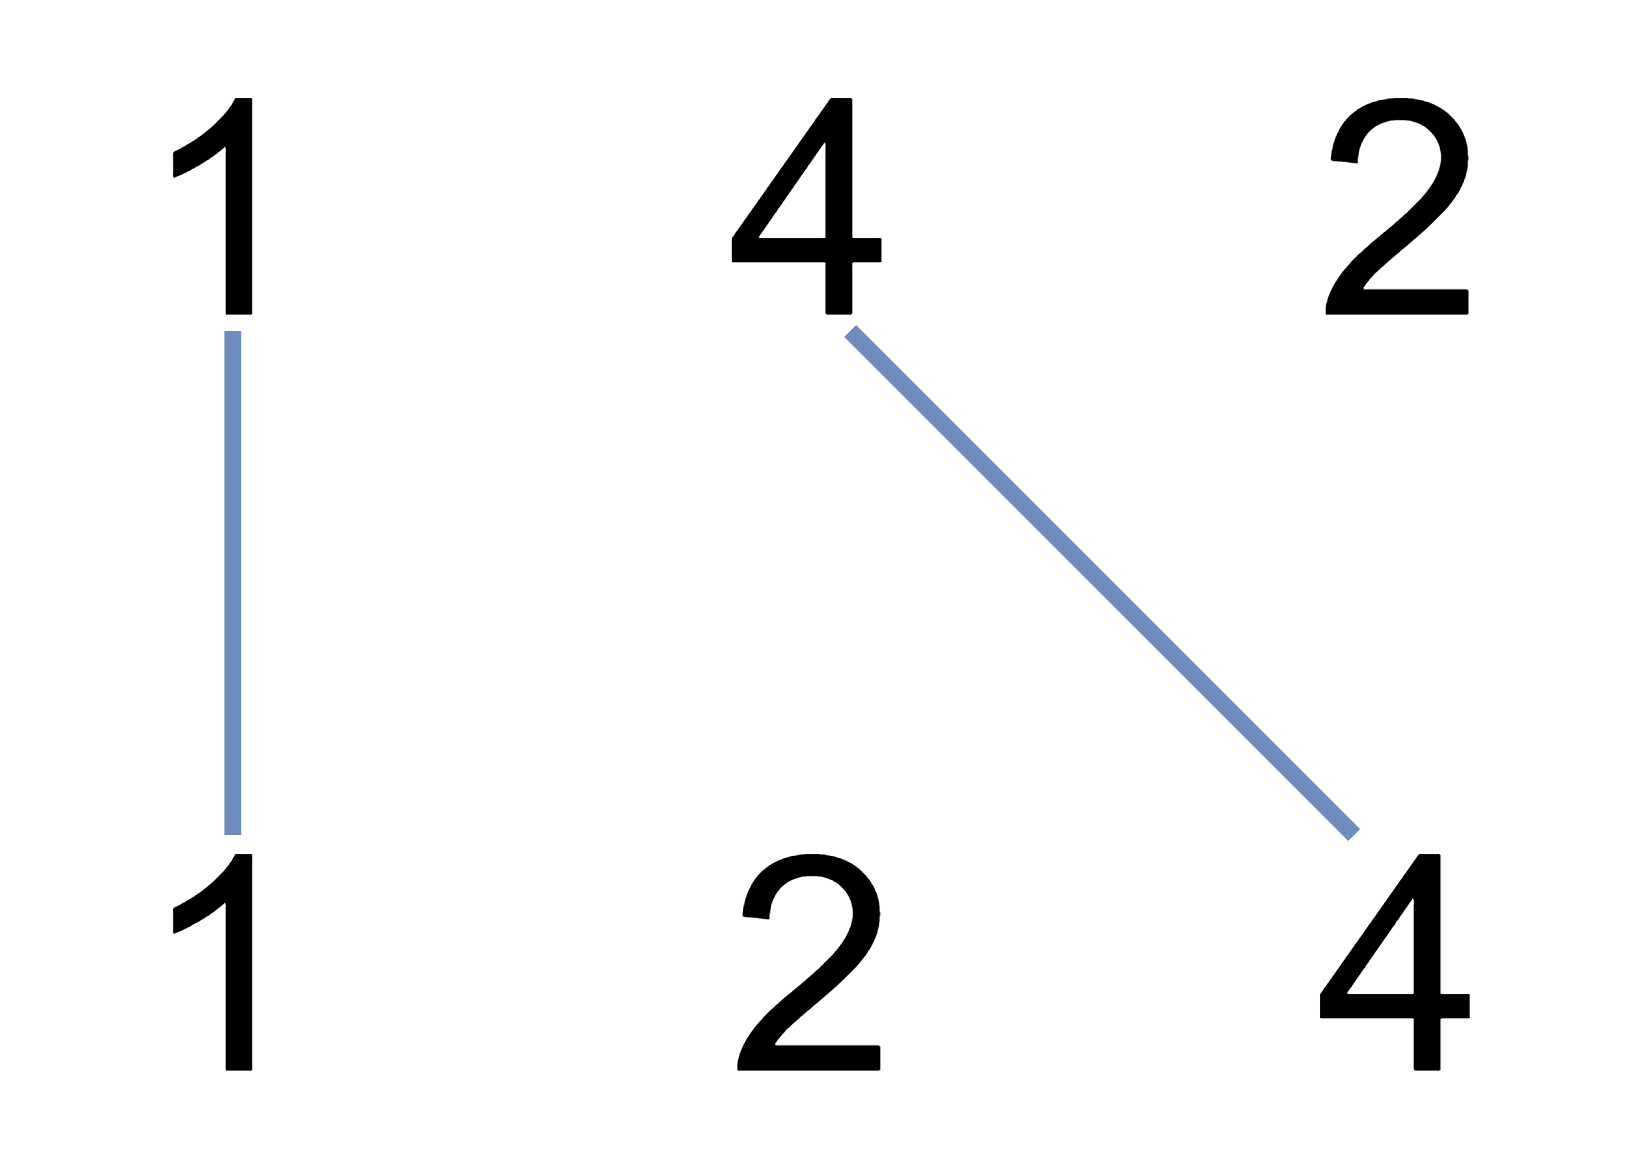 Diagram with A (1, 4, 2) and B (1, 2, 4) arrays with non intersecting lines